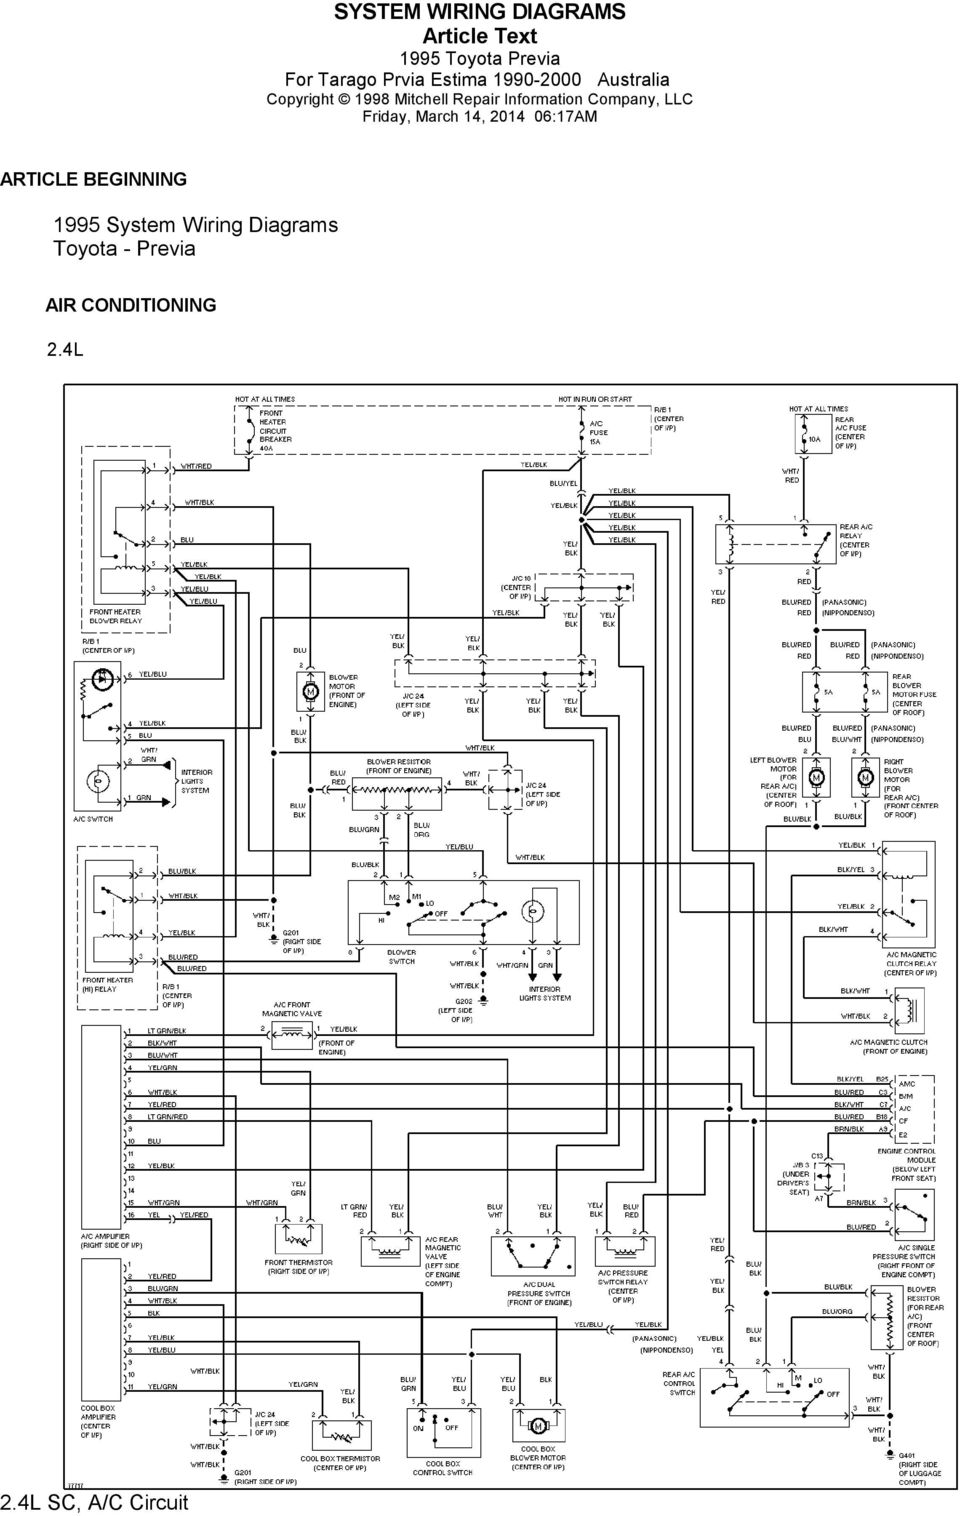 2000 Impala Abs Wiring Diagram Free Download Wiring Diagram